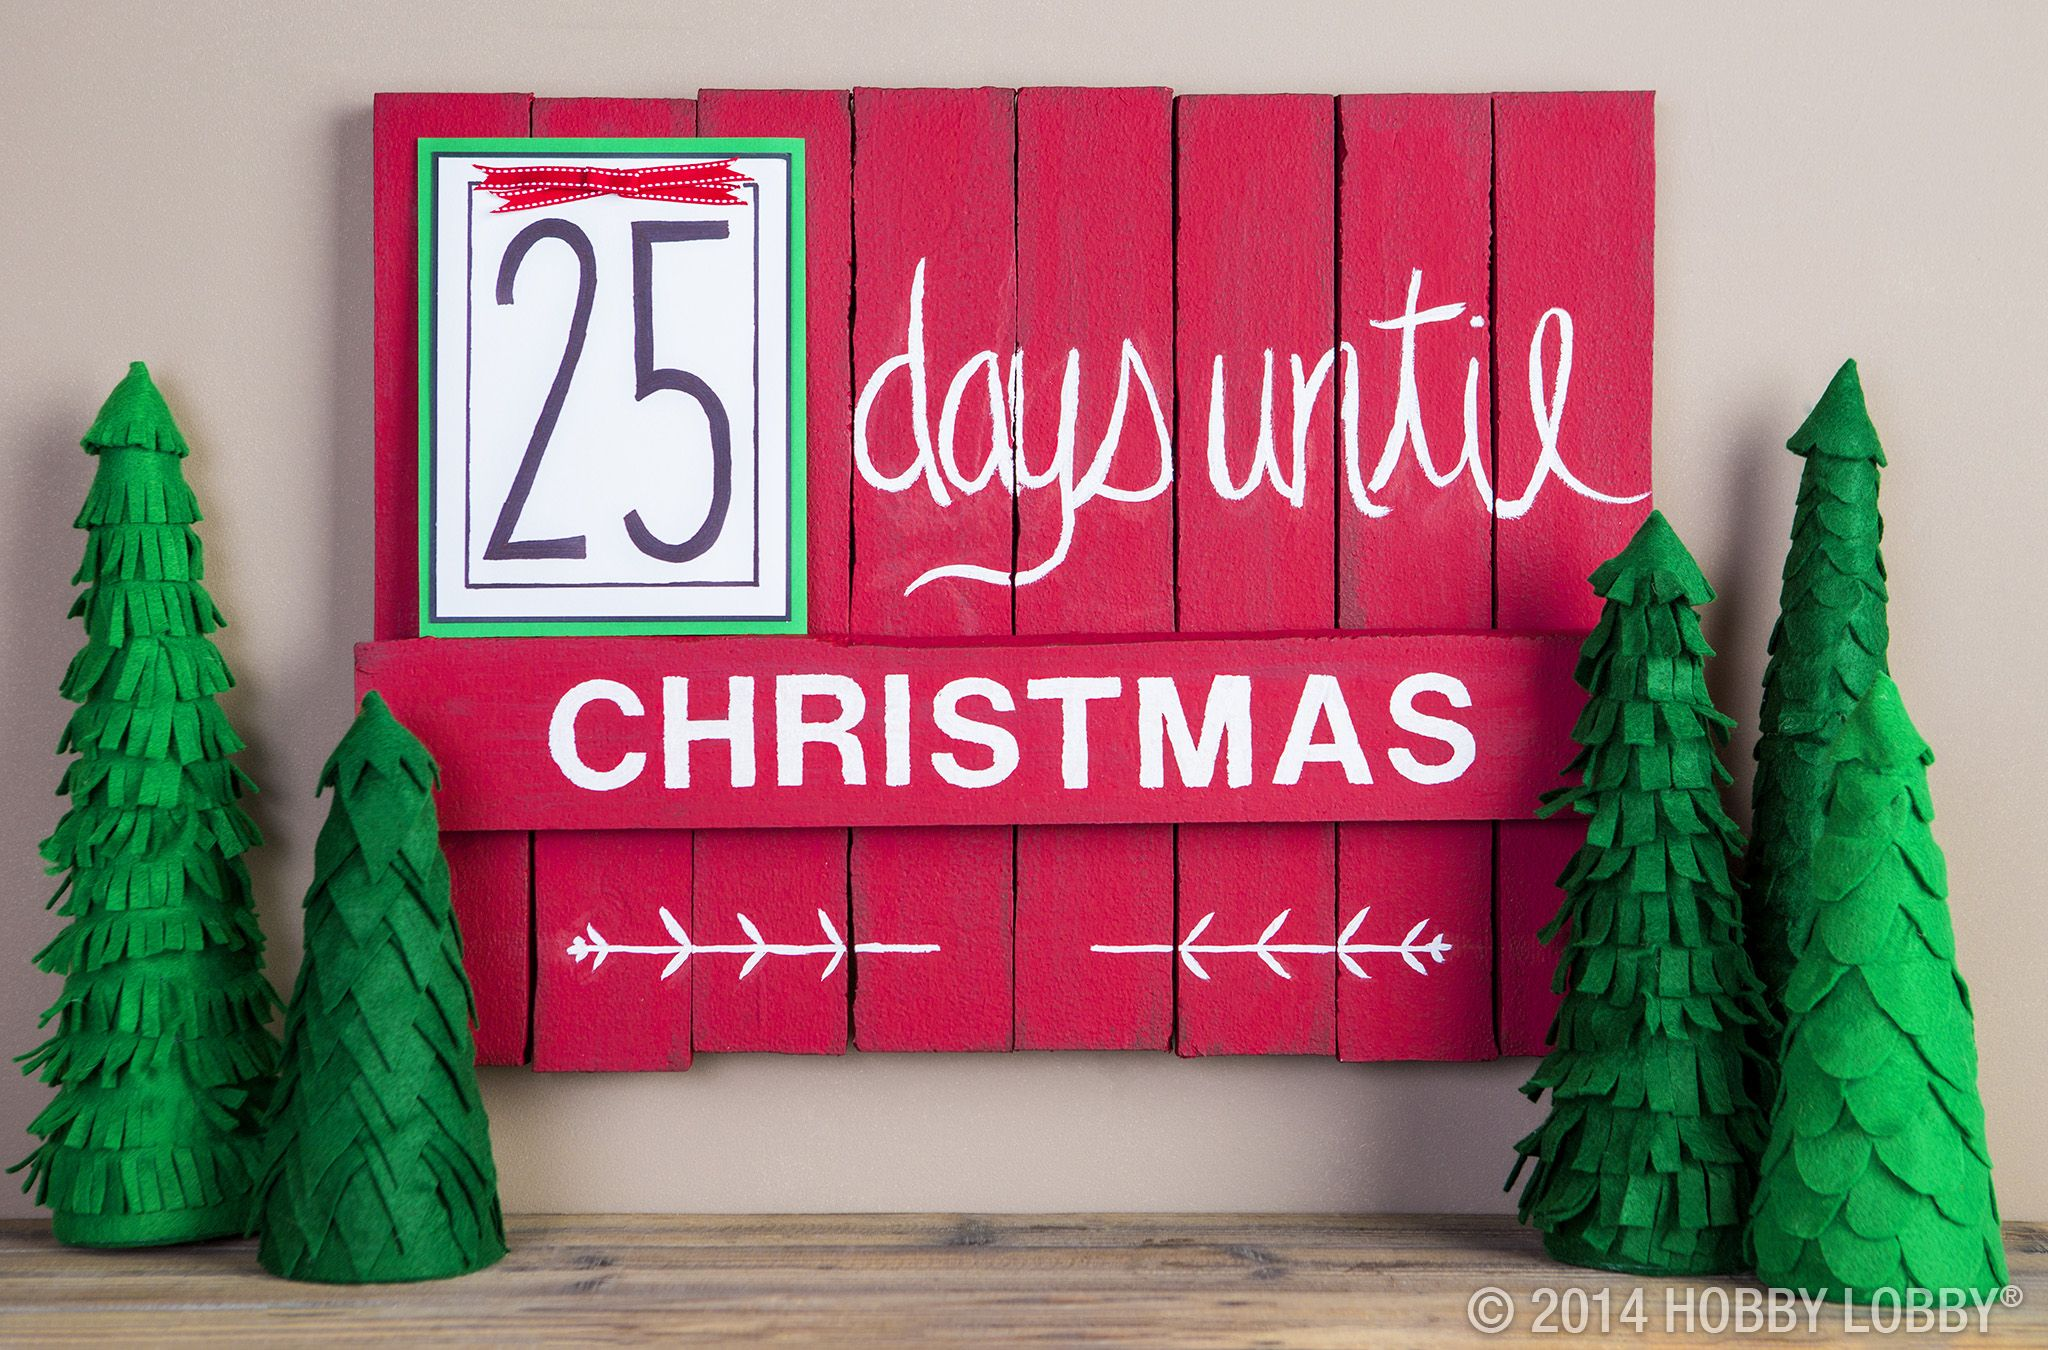 25 days until christmas schedule store